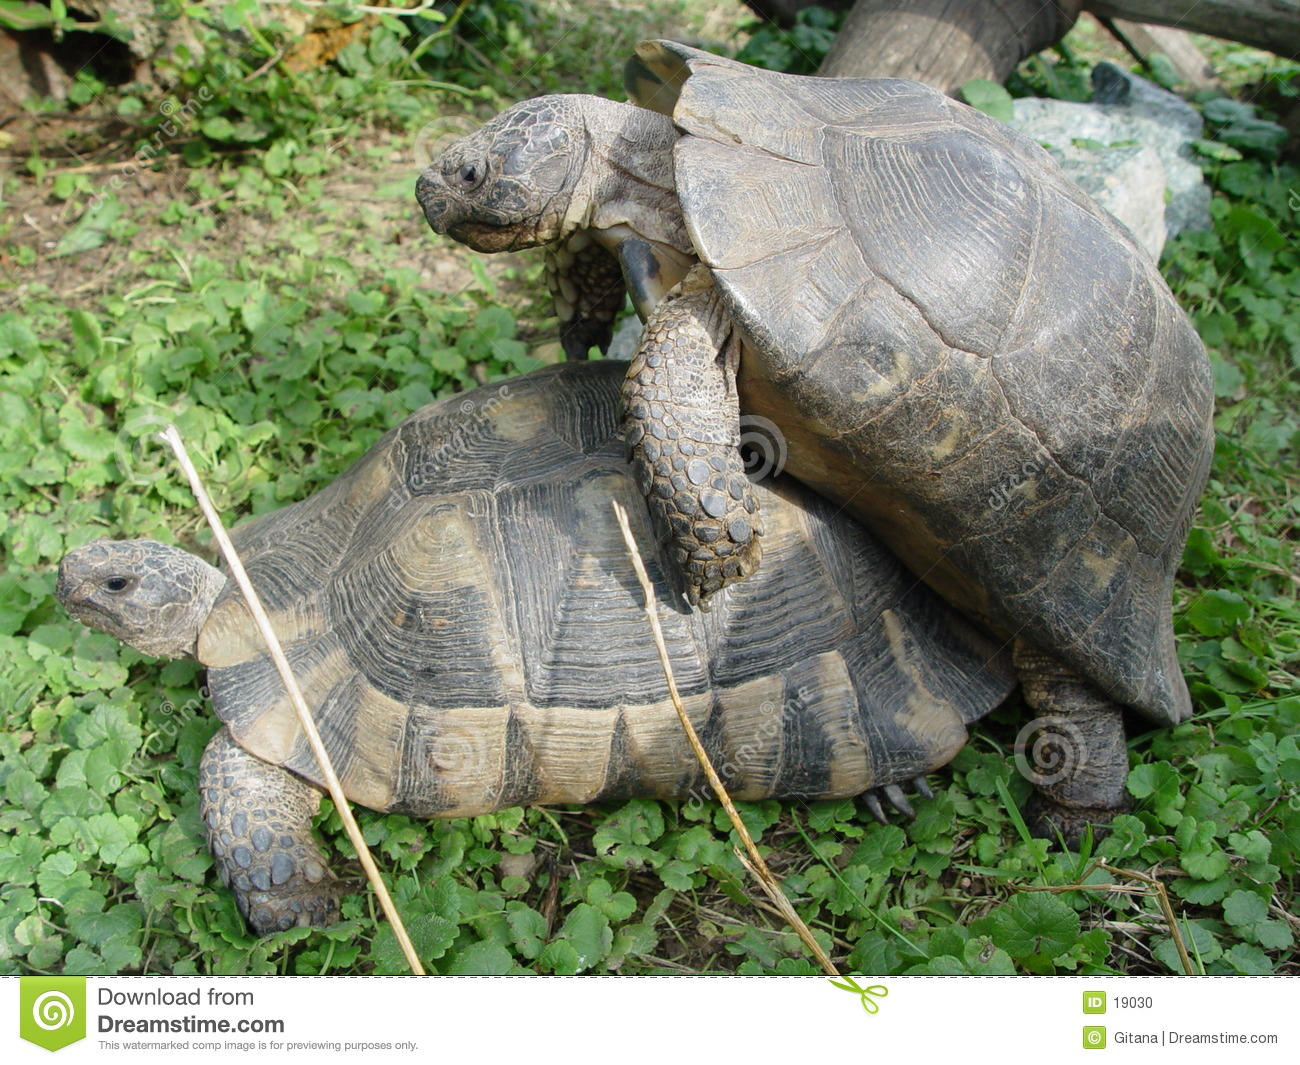 turtle at the sexual intercourse